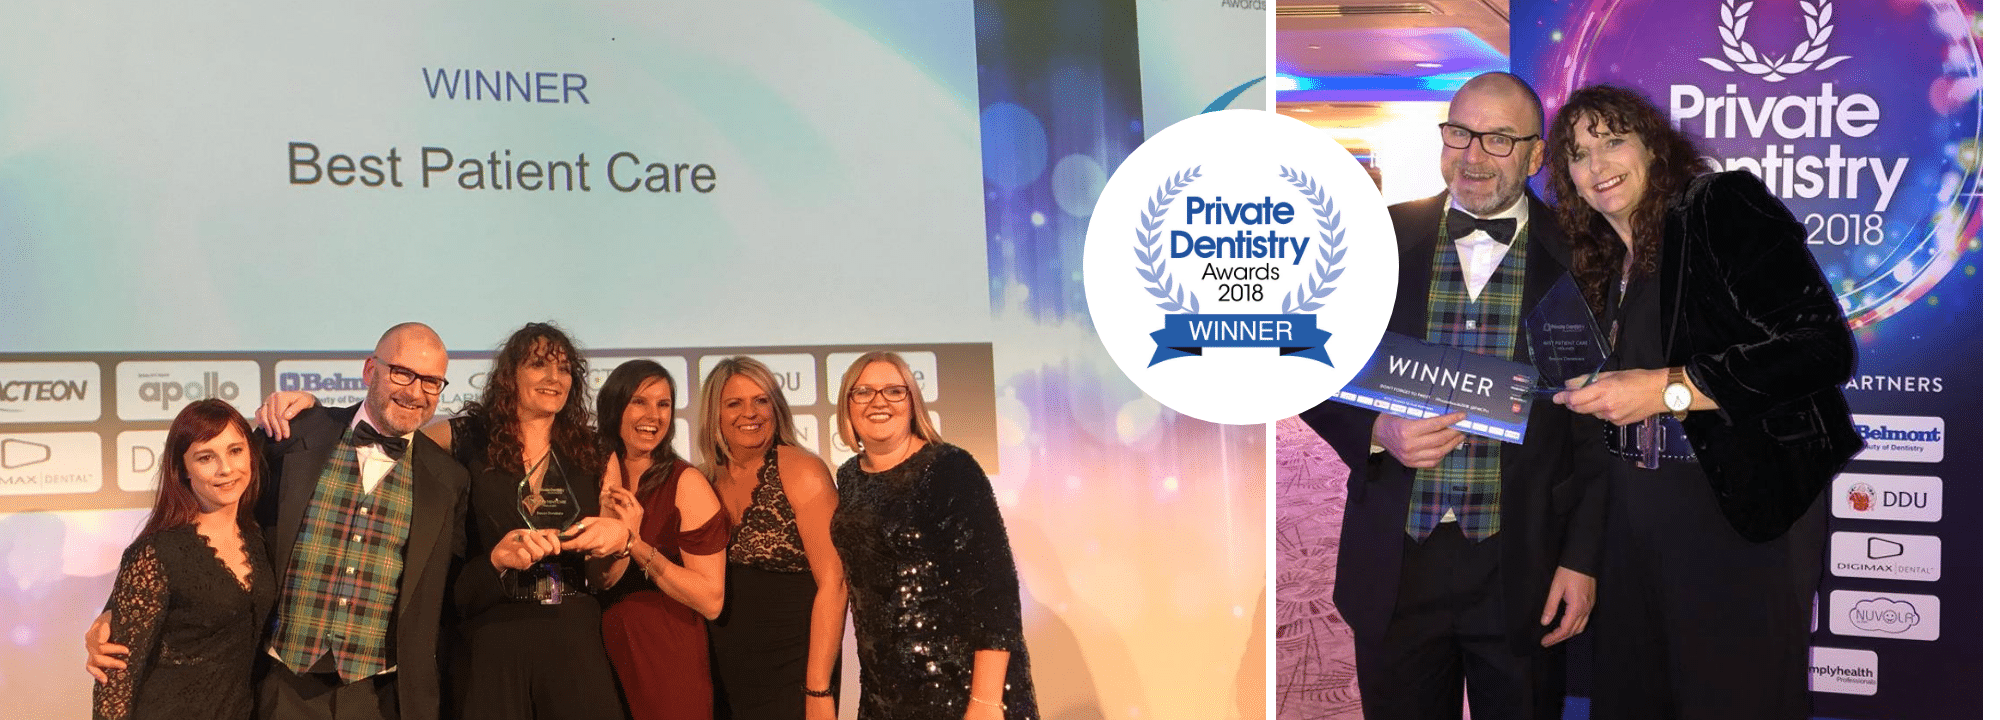 Beacon dental award winning dentist